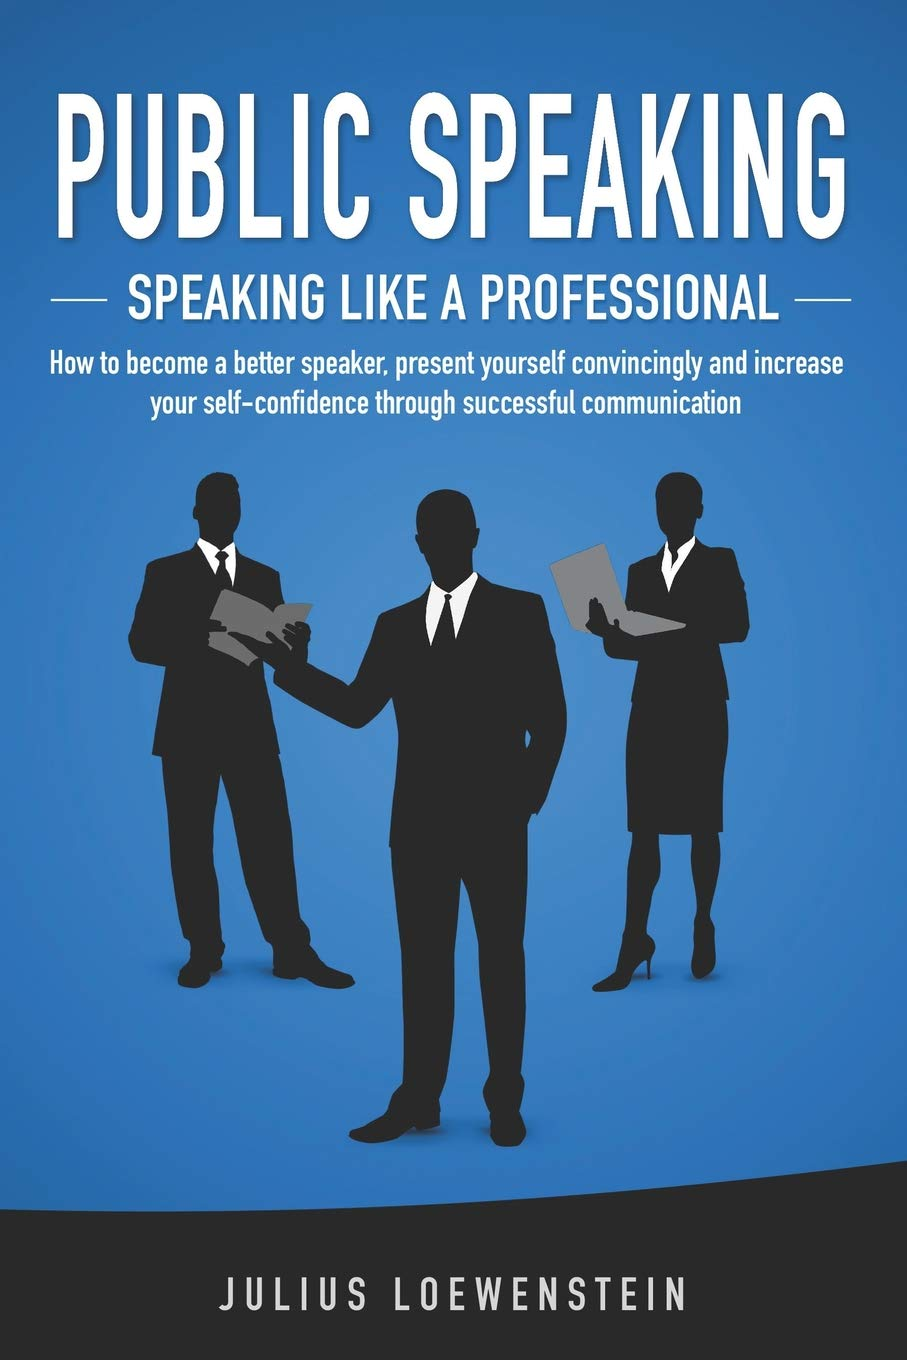 PUBLIC SPEAKING - Speaking like a Professional: How to become a